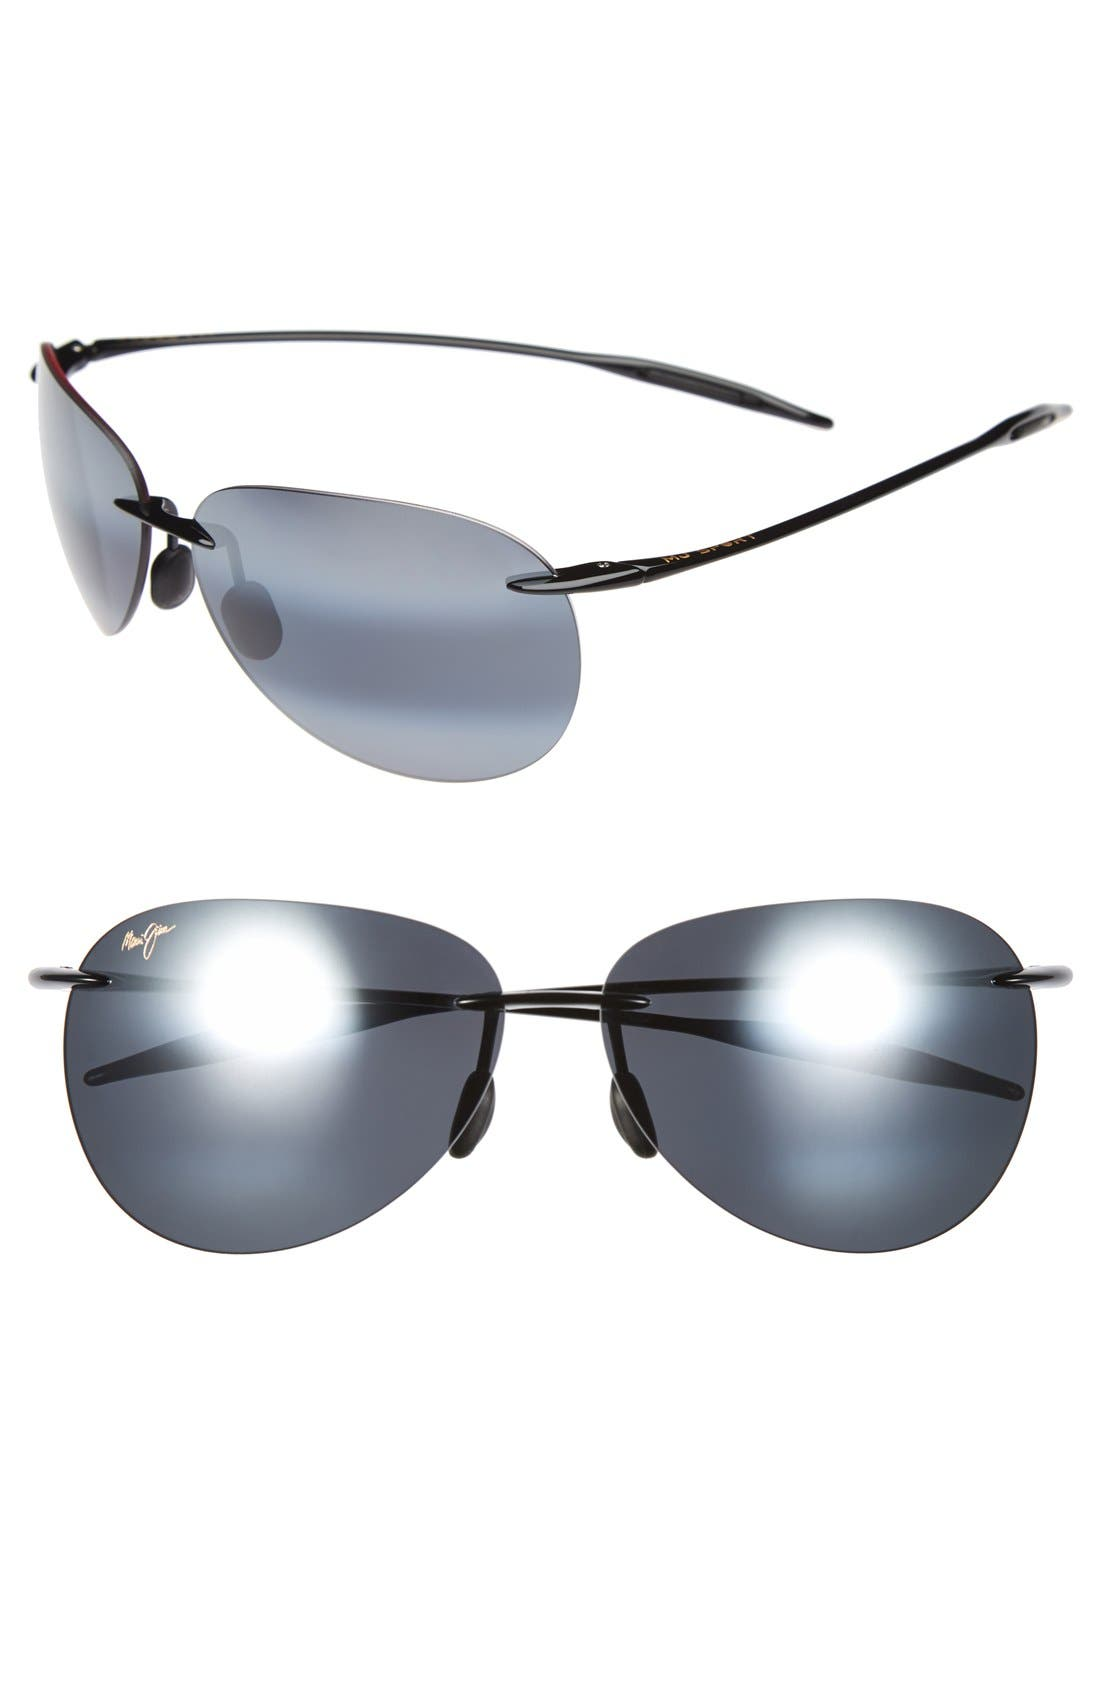 Sugar Beach 62mm PolarizedPlus2<sup>®</sup> Rimless Sunglasses,                             Main thumbnail 1, color,                             Gloss Black/ Neutral Grey